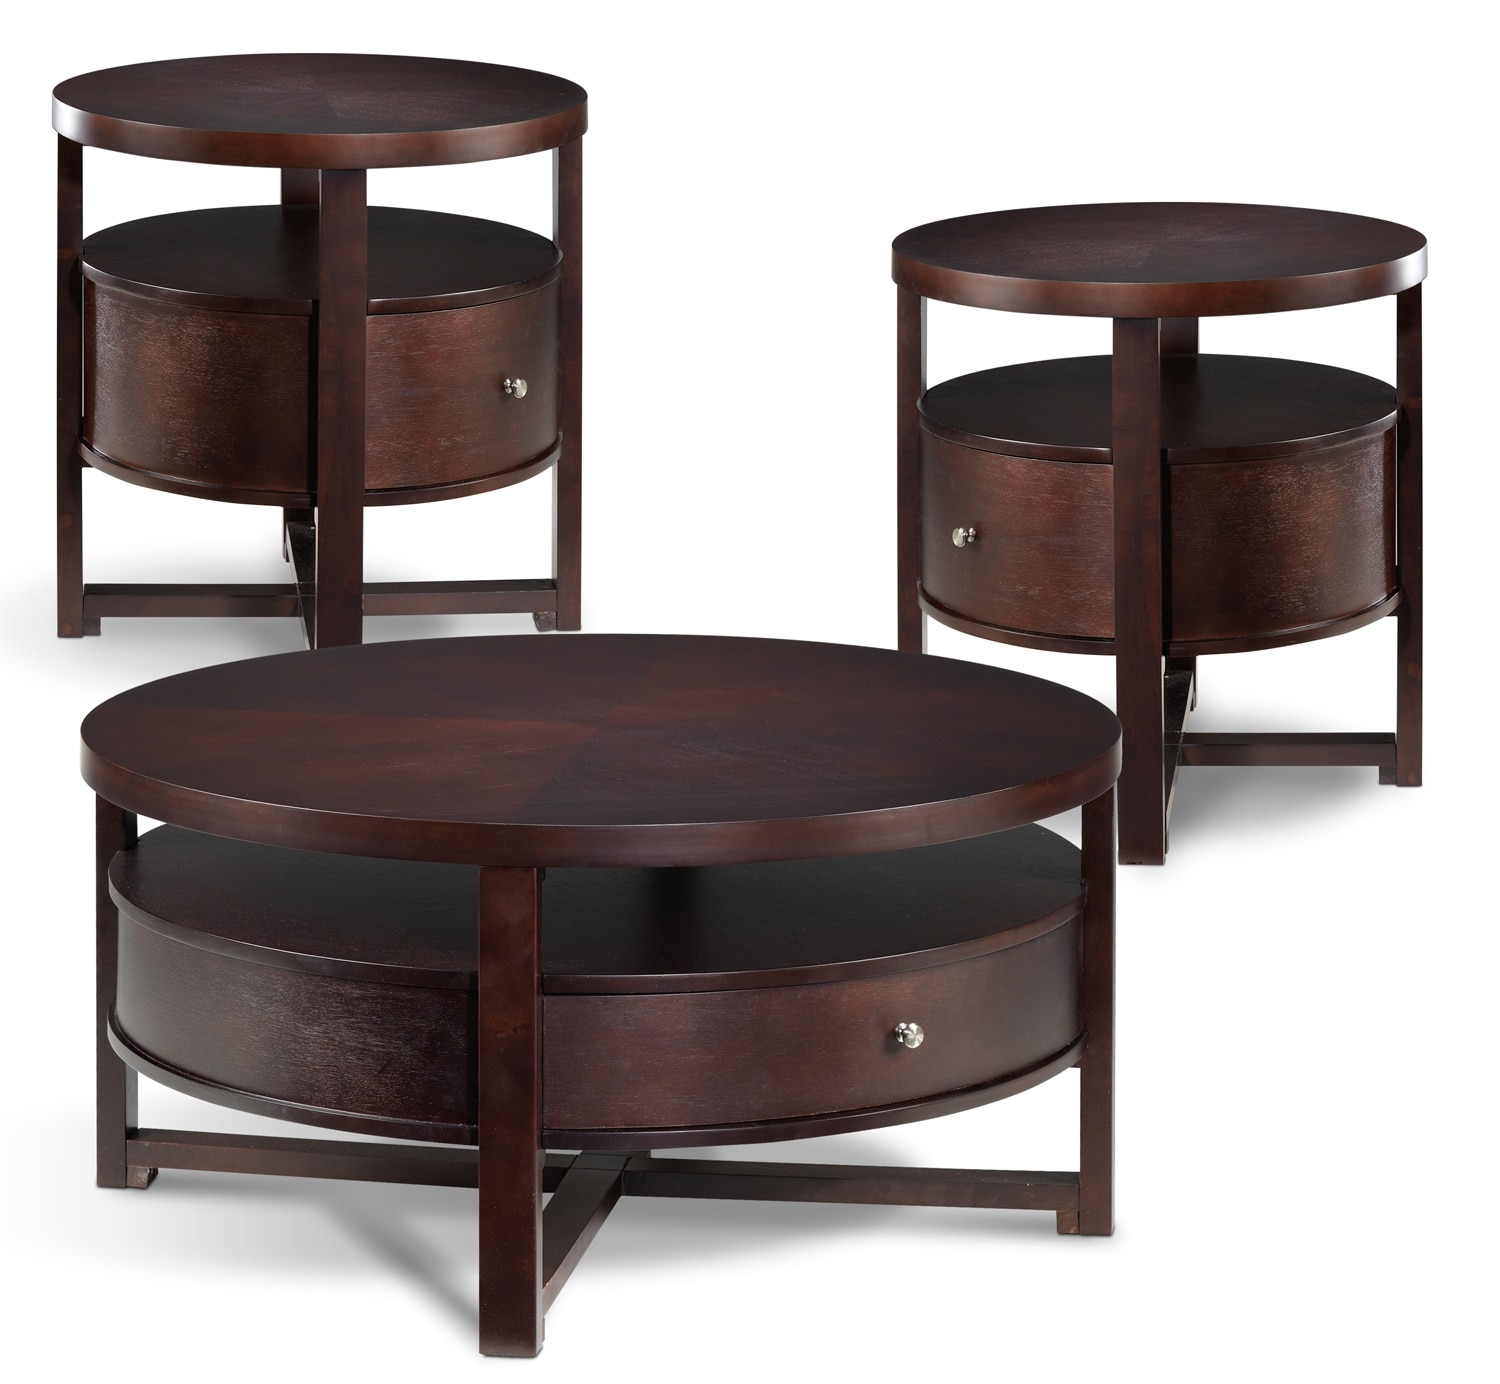 Accent and Occasional Furniture - Compass Coffee Table & Two End Tables Set